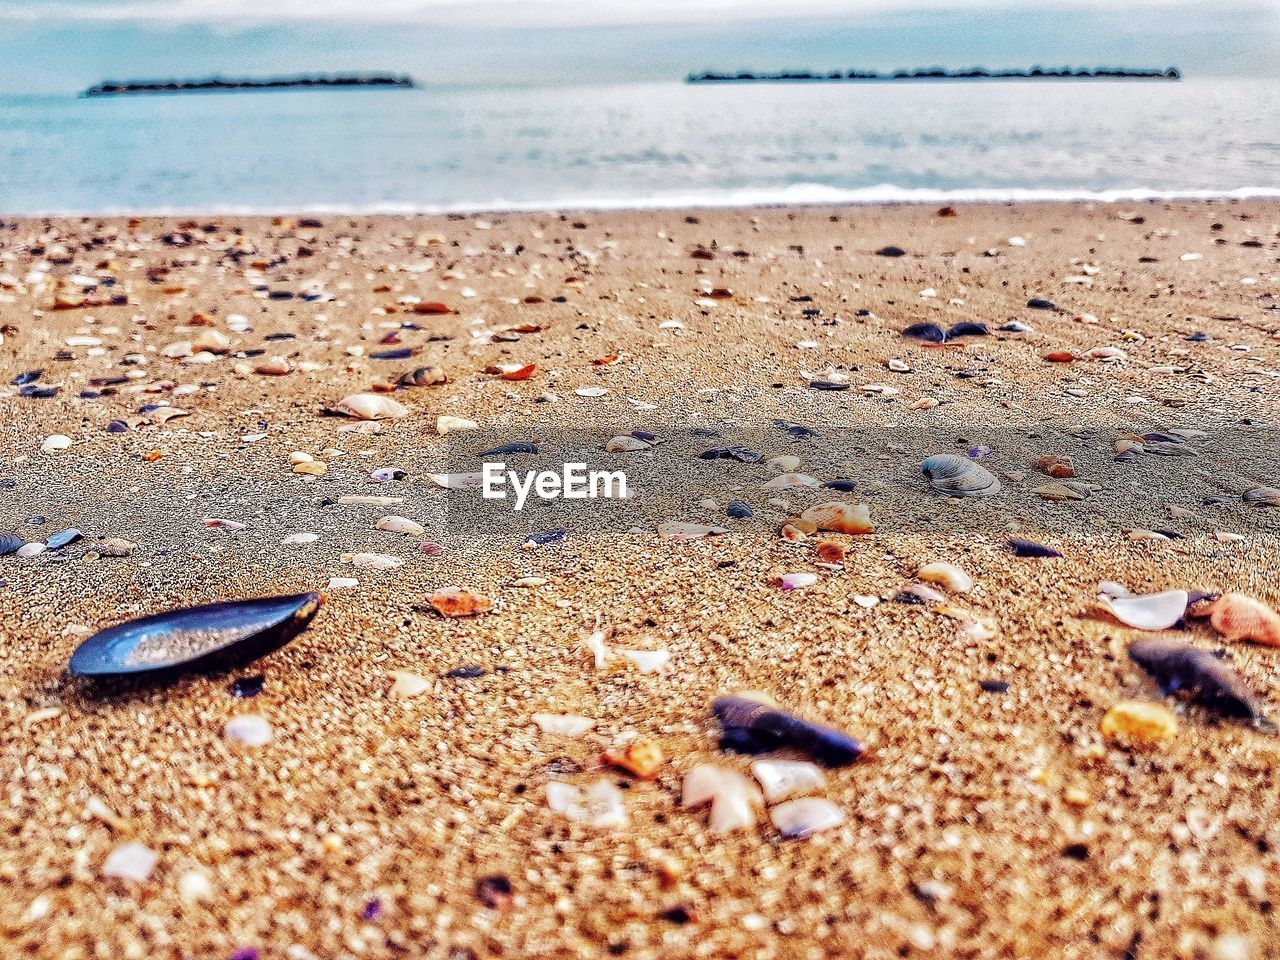 beach, sea, water, sand, shore, horizon over water, nature, tranquility, tranquil scene, beauty in nature, scenics, day, outdoors, no people, sunlight, close-up, pebble beach, sky